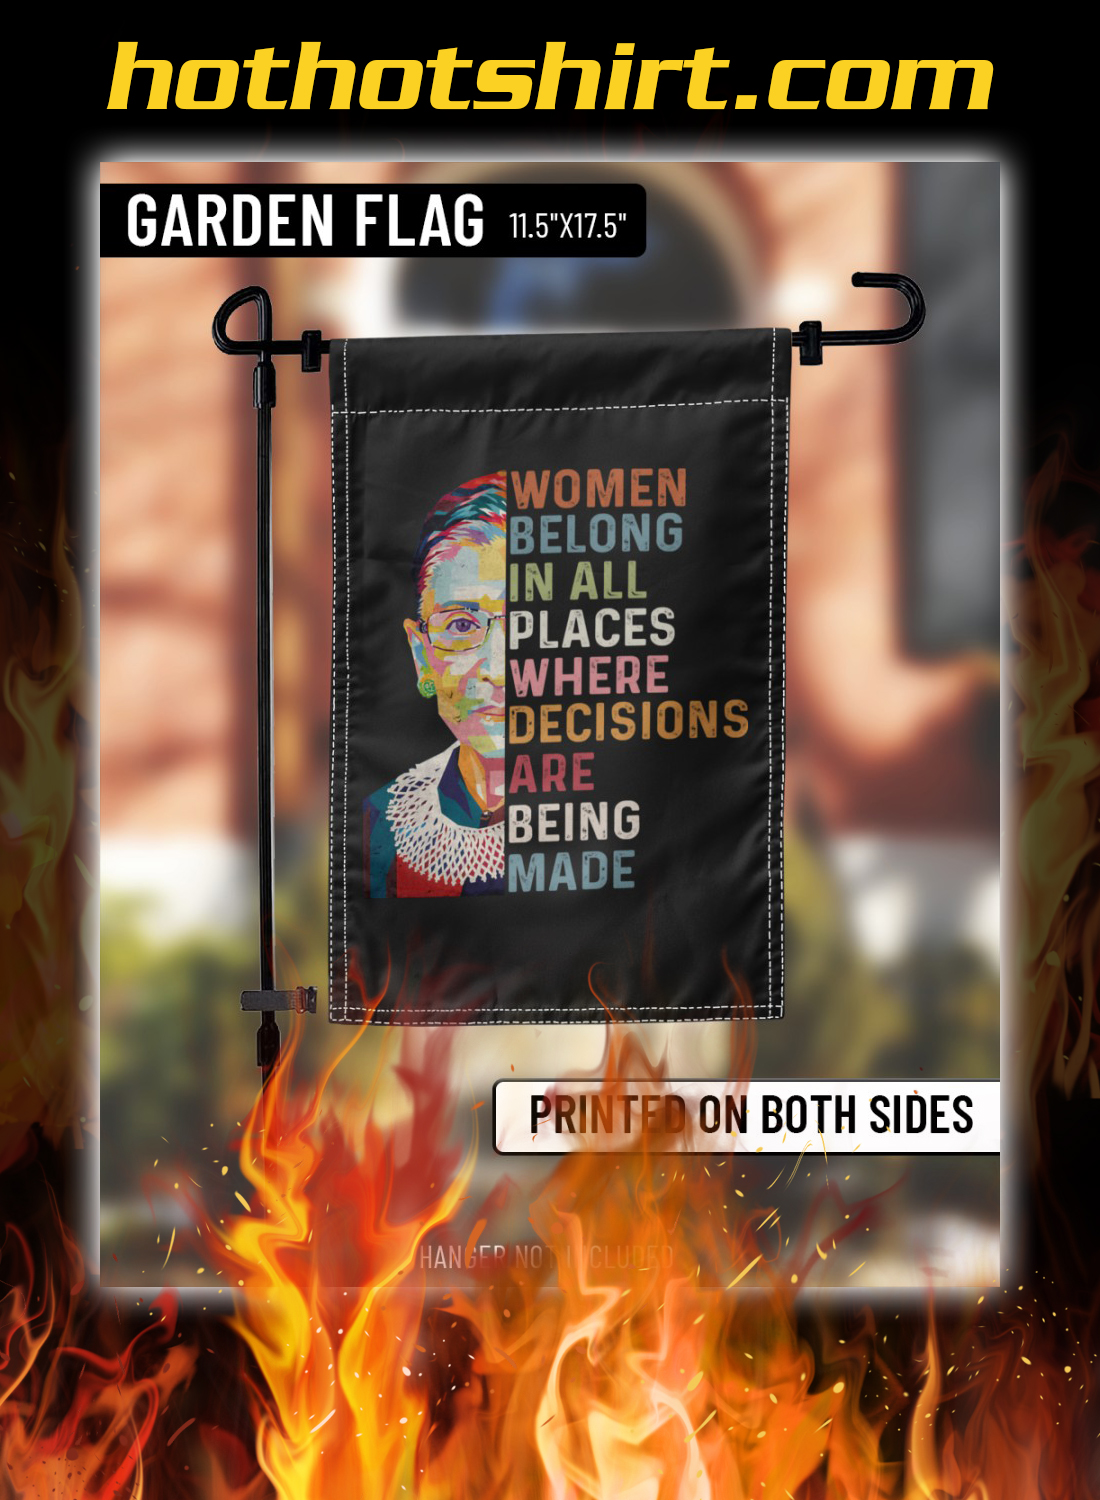 Ruth bader ginsburg Women belong in all places where decisions are being made flags 1